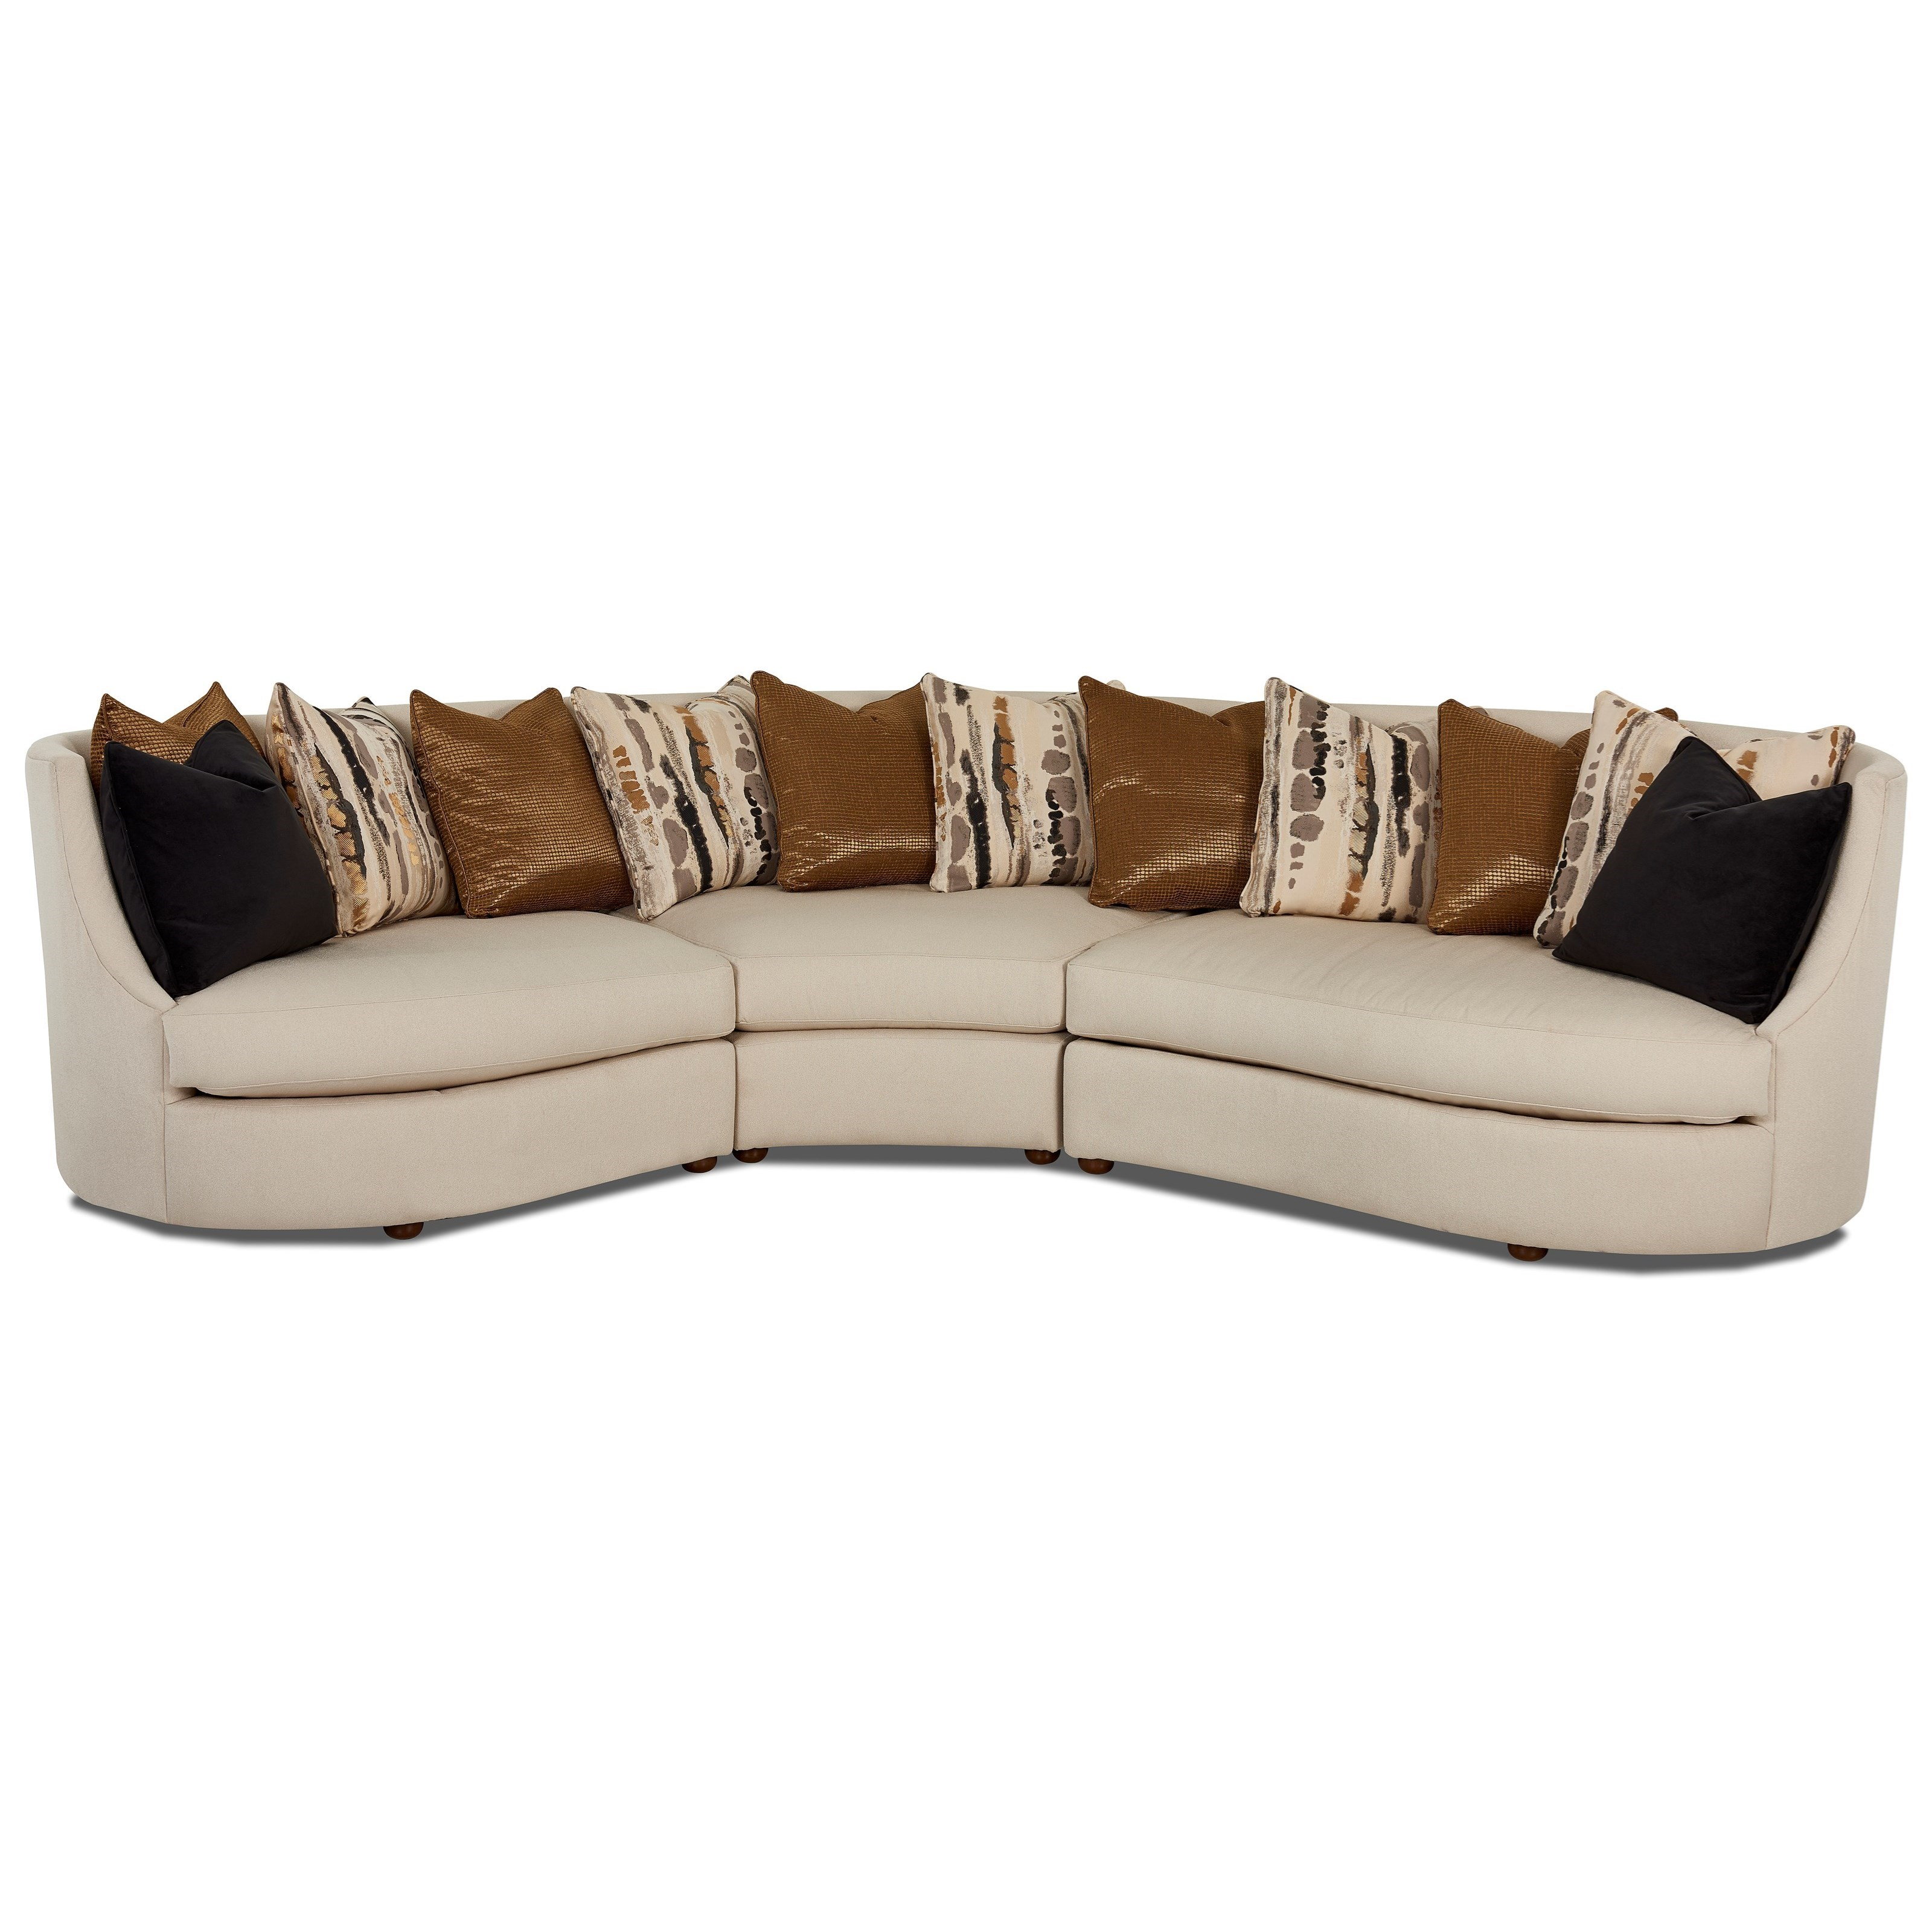 Klaussner Euclid Three Piece Curved Conversation Sectional with